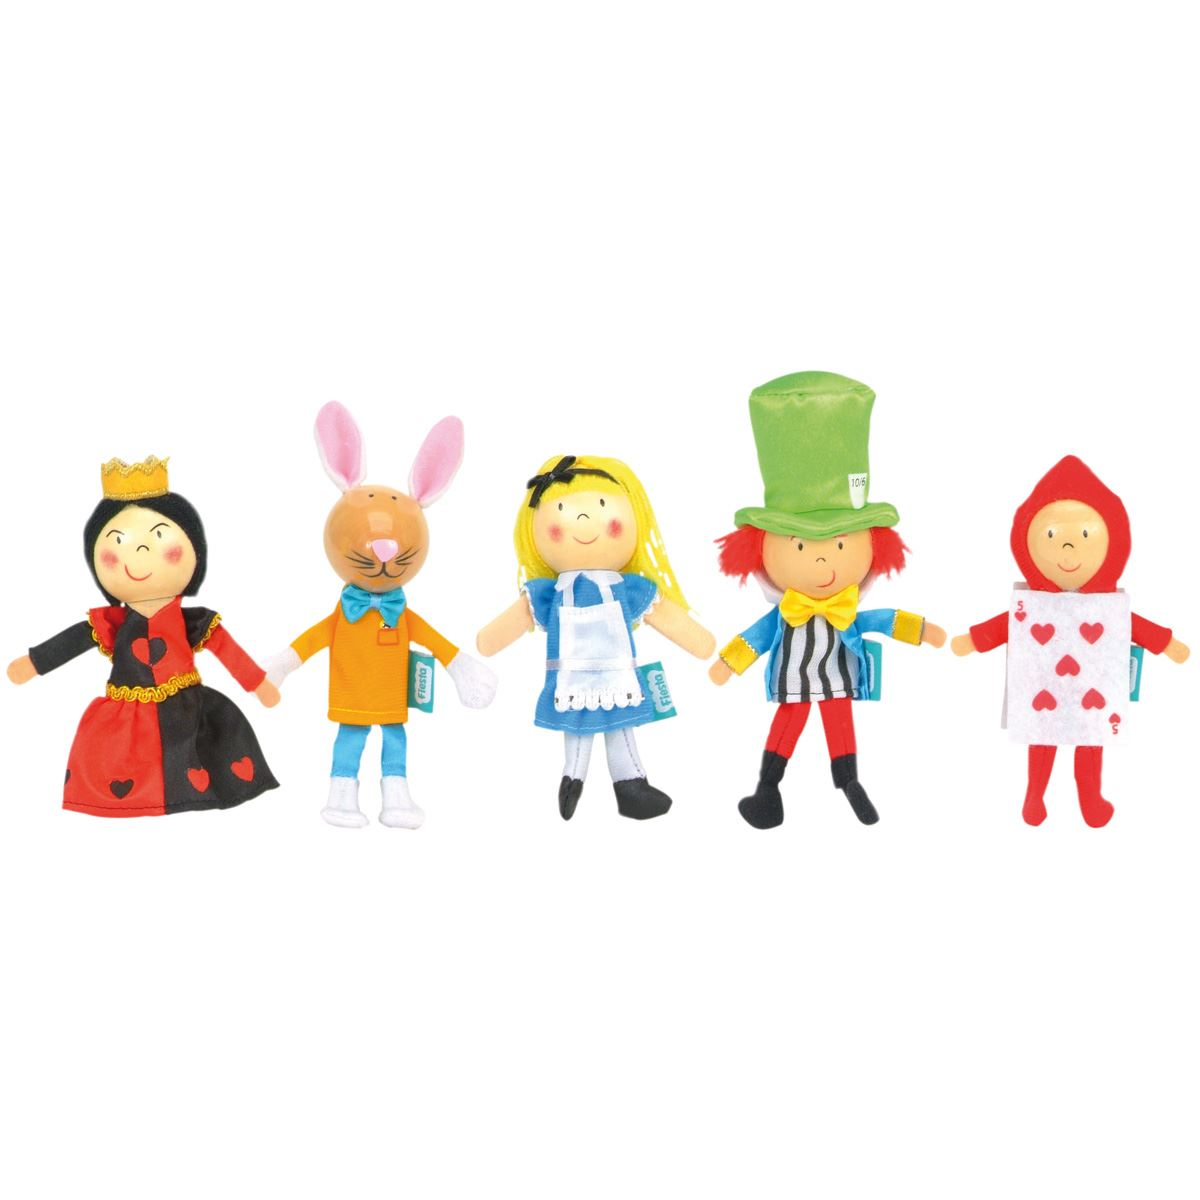 Alice in wonderland finger puppets fiesta crafts - Code de reduction alice garden ...